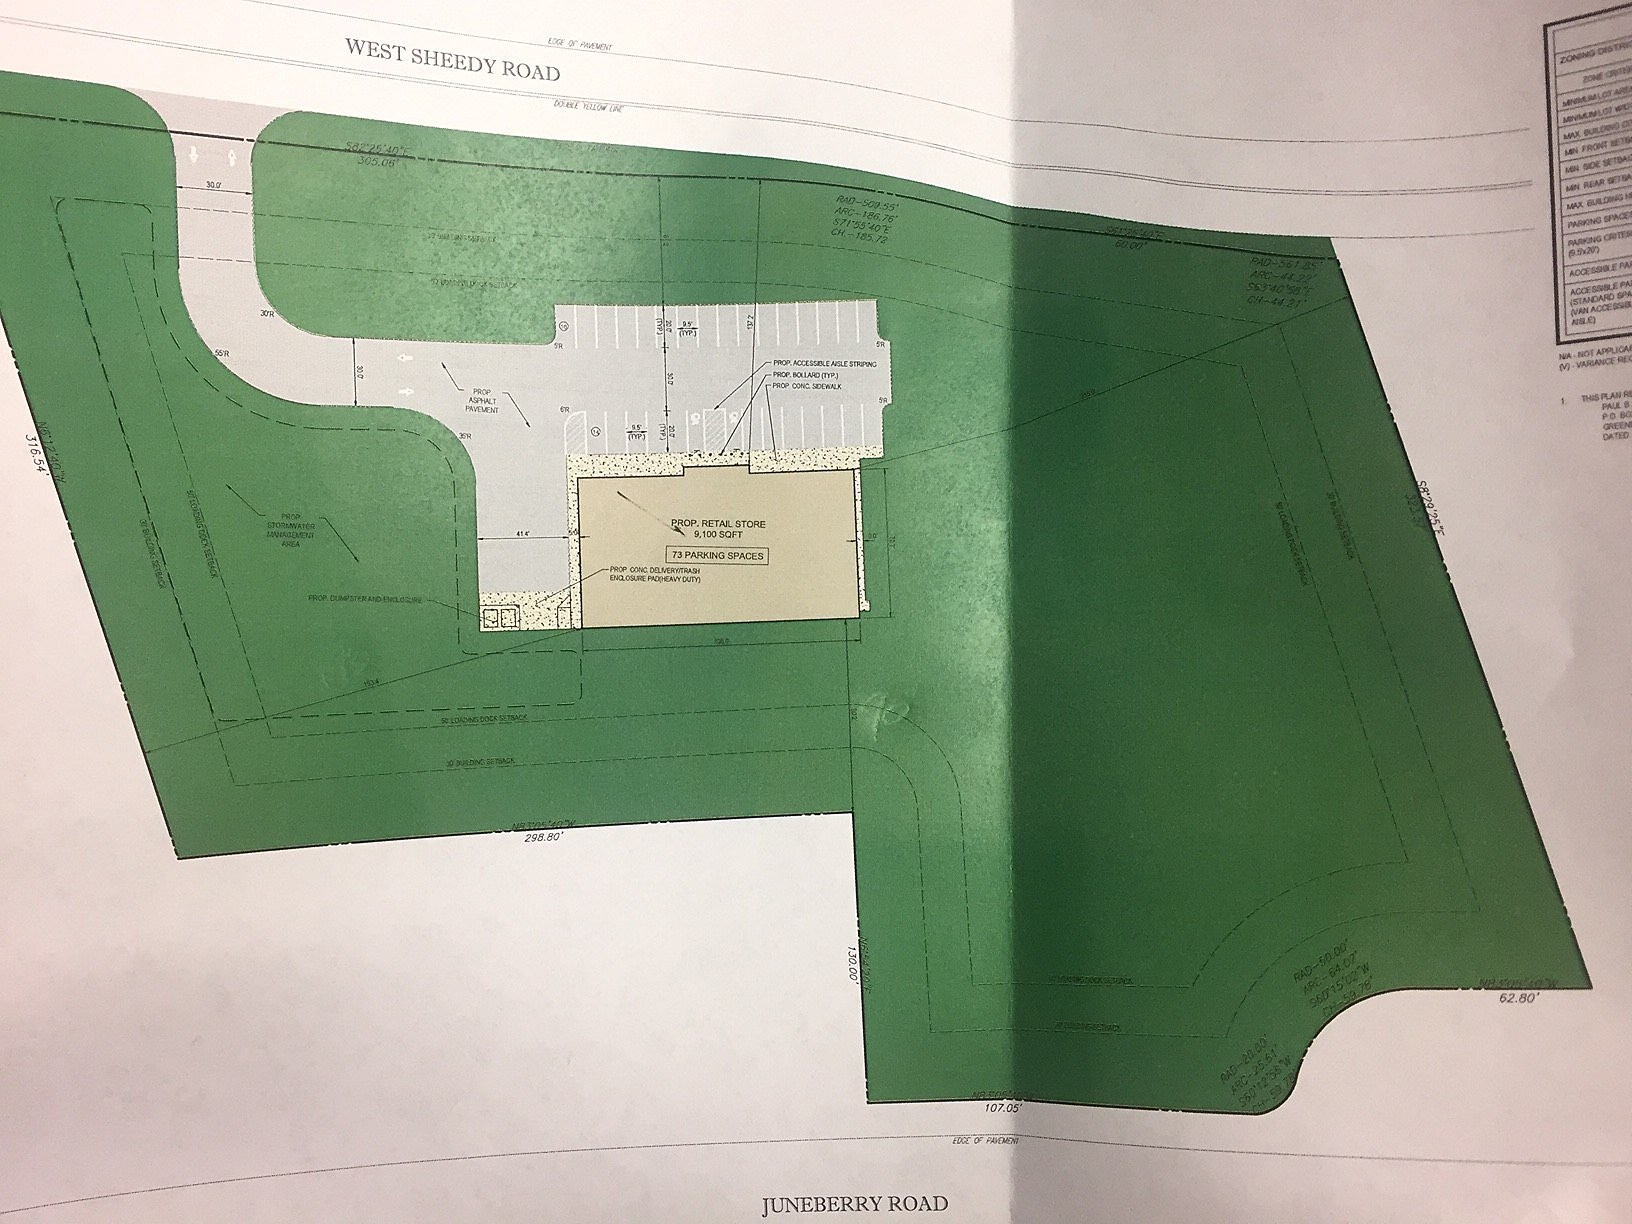 A Dollar General store is planned for a site on West Sheedy Road in Vestal. (Photo: WNBF News)